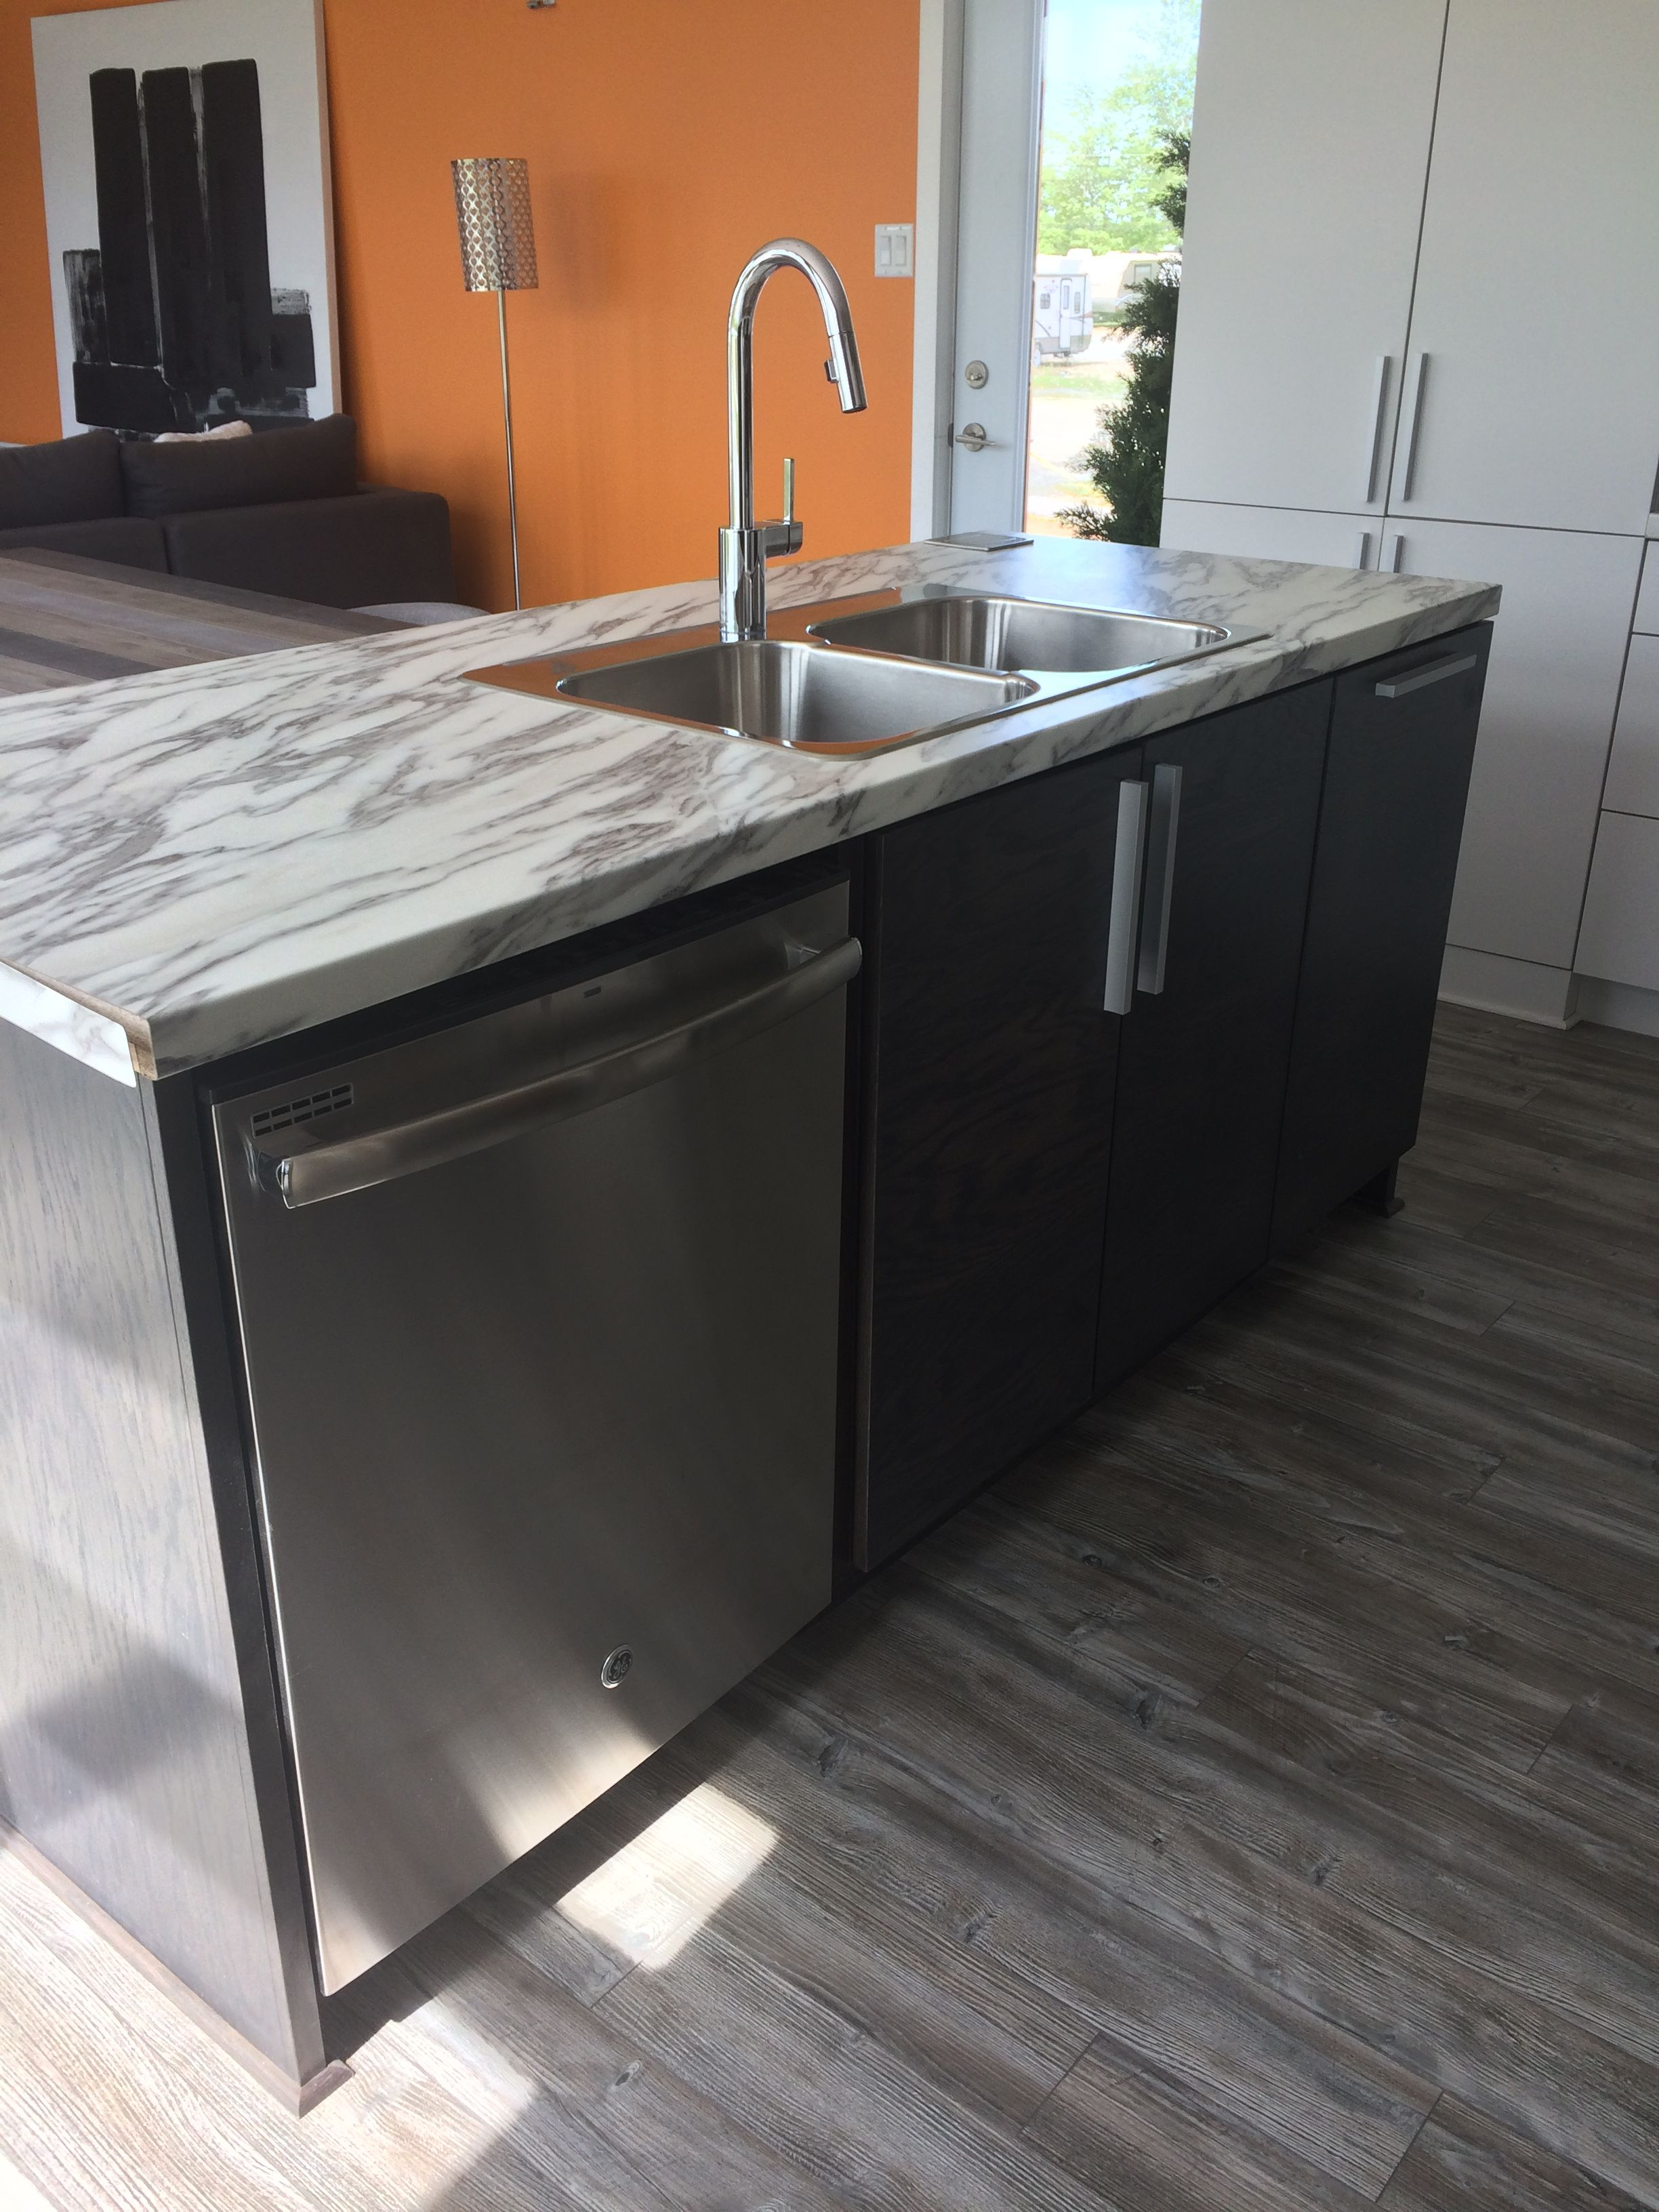 This Efficient L-shaped Kitchen Includes An Island With A